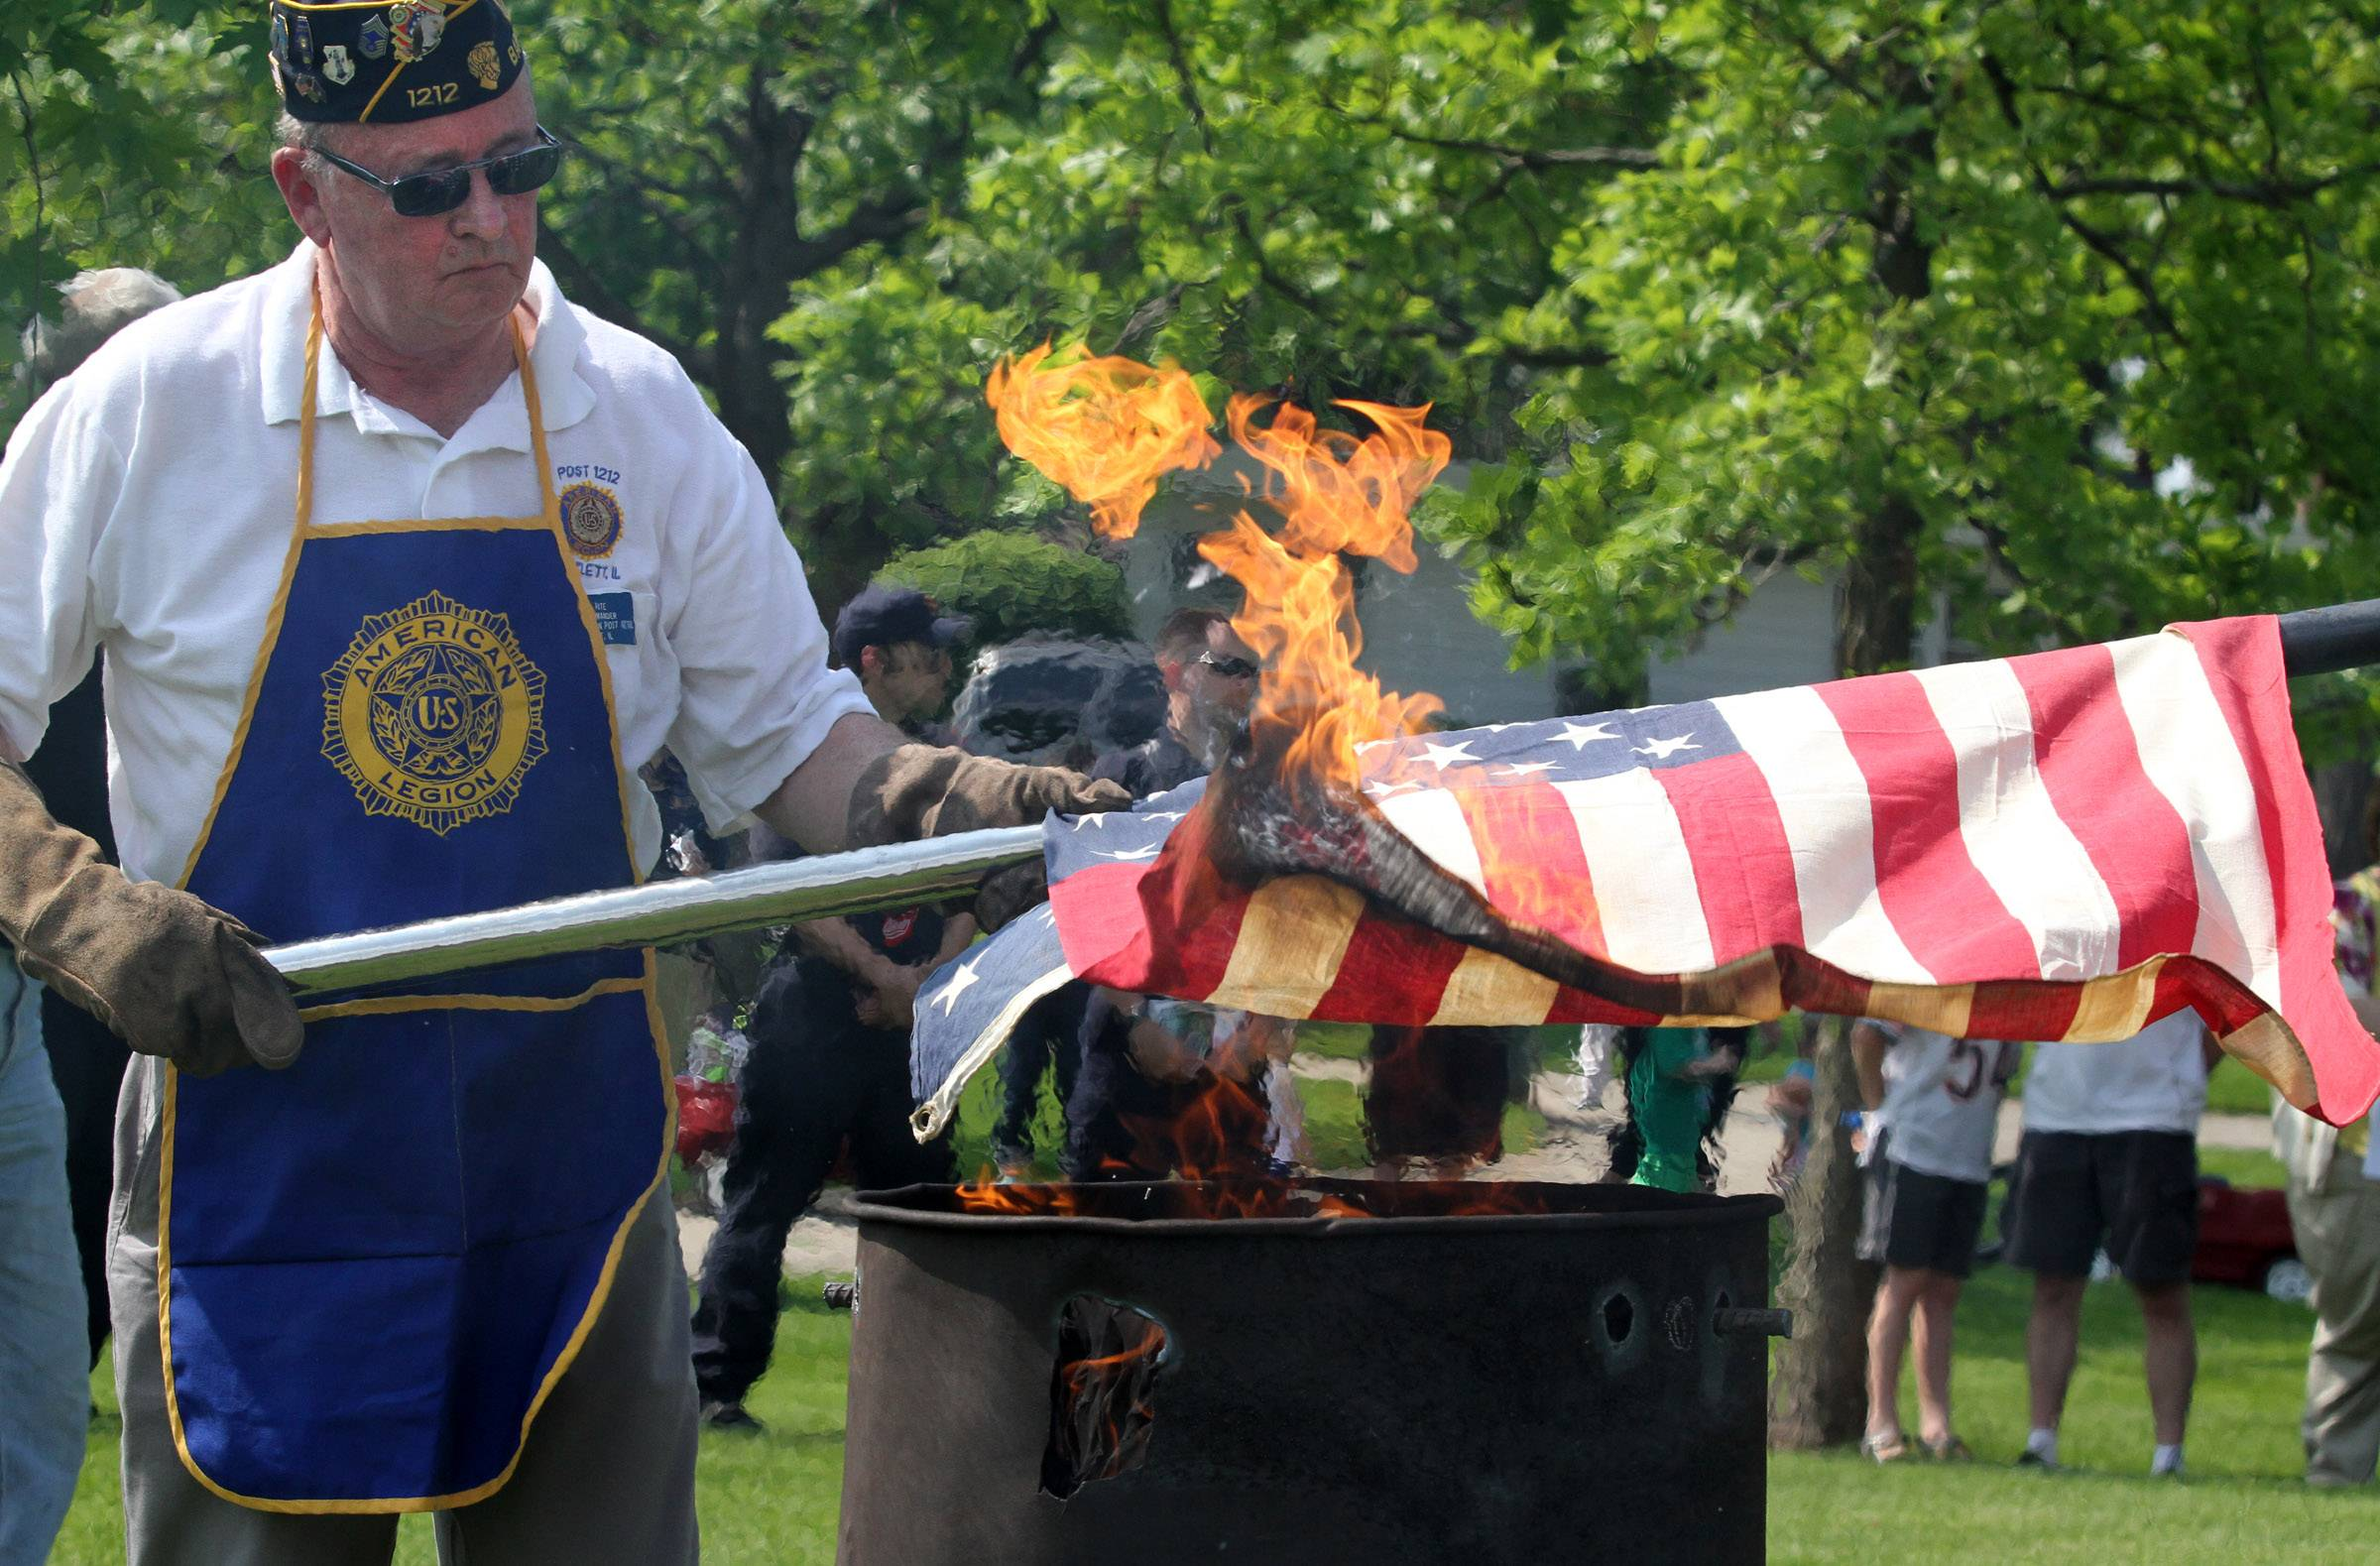 Brian Pate of Bartlett with American Legion Post 1212 lowers an old worn American into a barrel of flames during a flag retirement ceremony held by Bartlett VFW Post 11018 and at Bartlett Park on Memorial Day. Thirteen flags were retired in honor of first thirteen colonies.